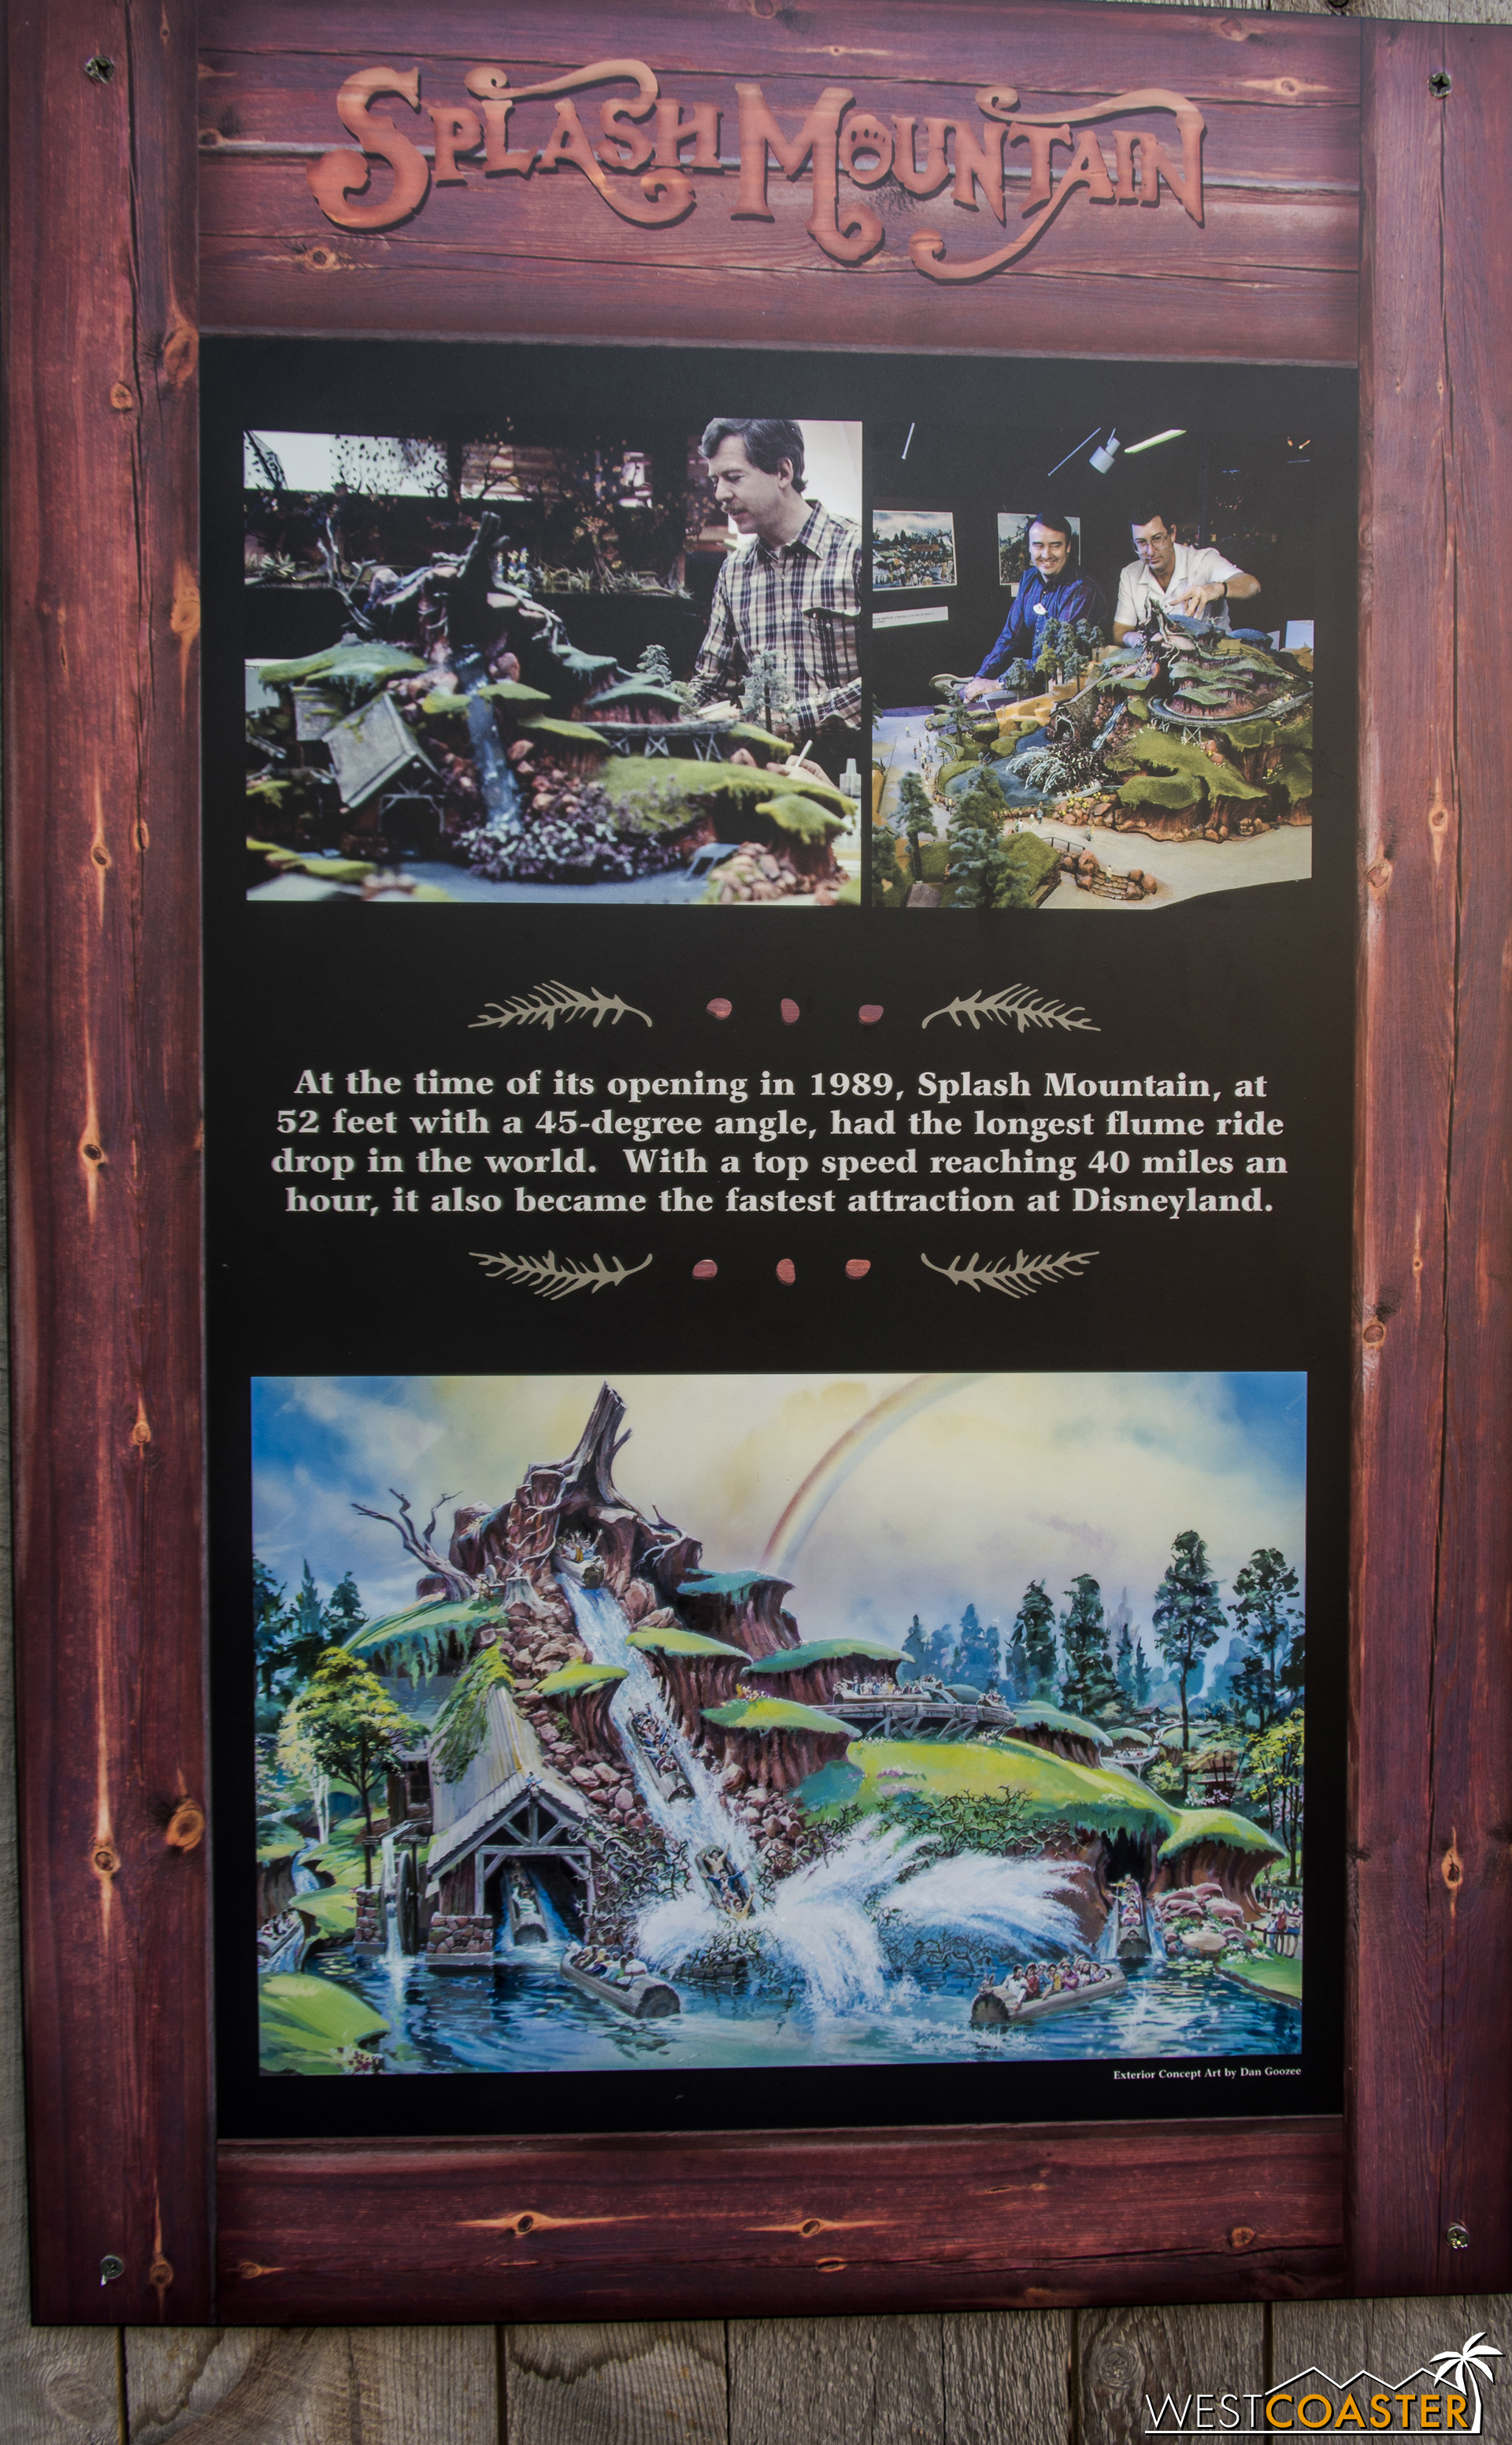 They've got a poster for the work walls here too, documenting Splash Mountain's history.  But something caught my eye in the old concept art the showed...